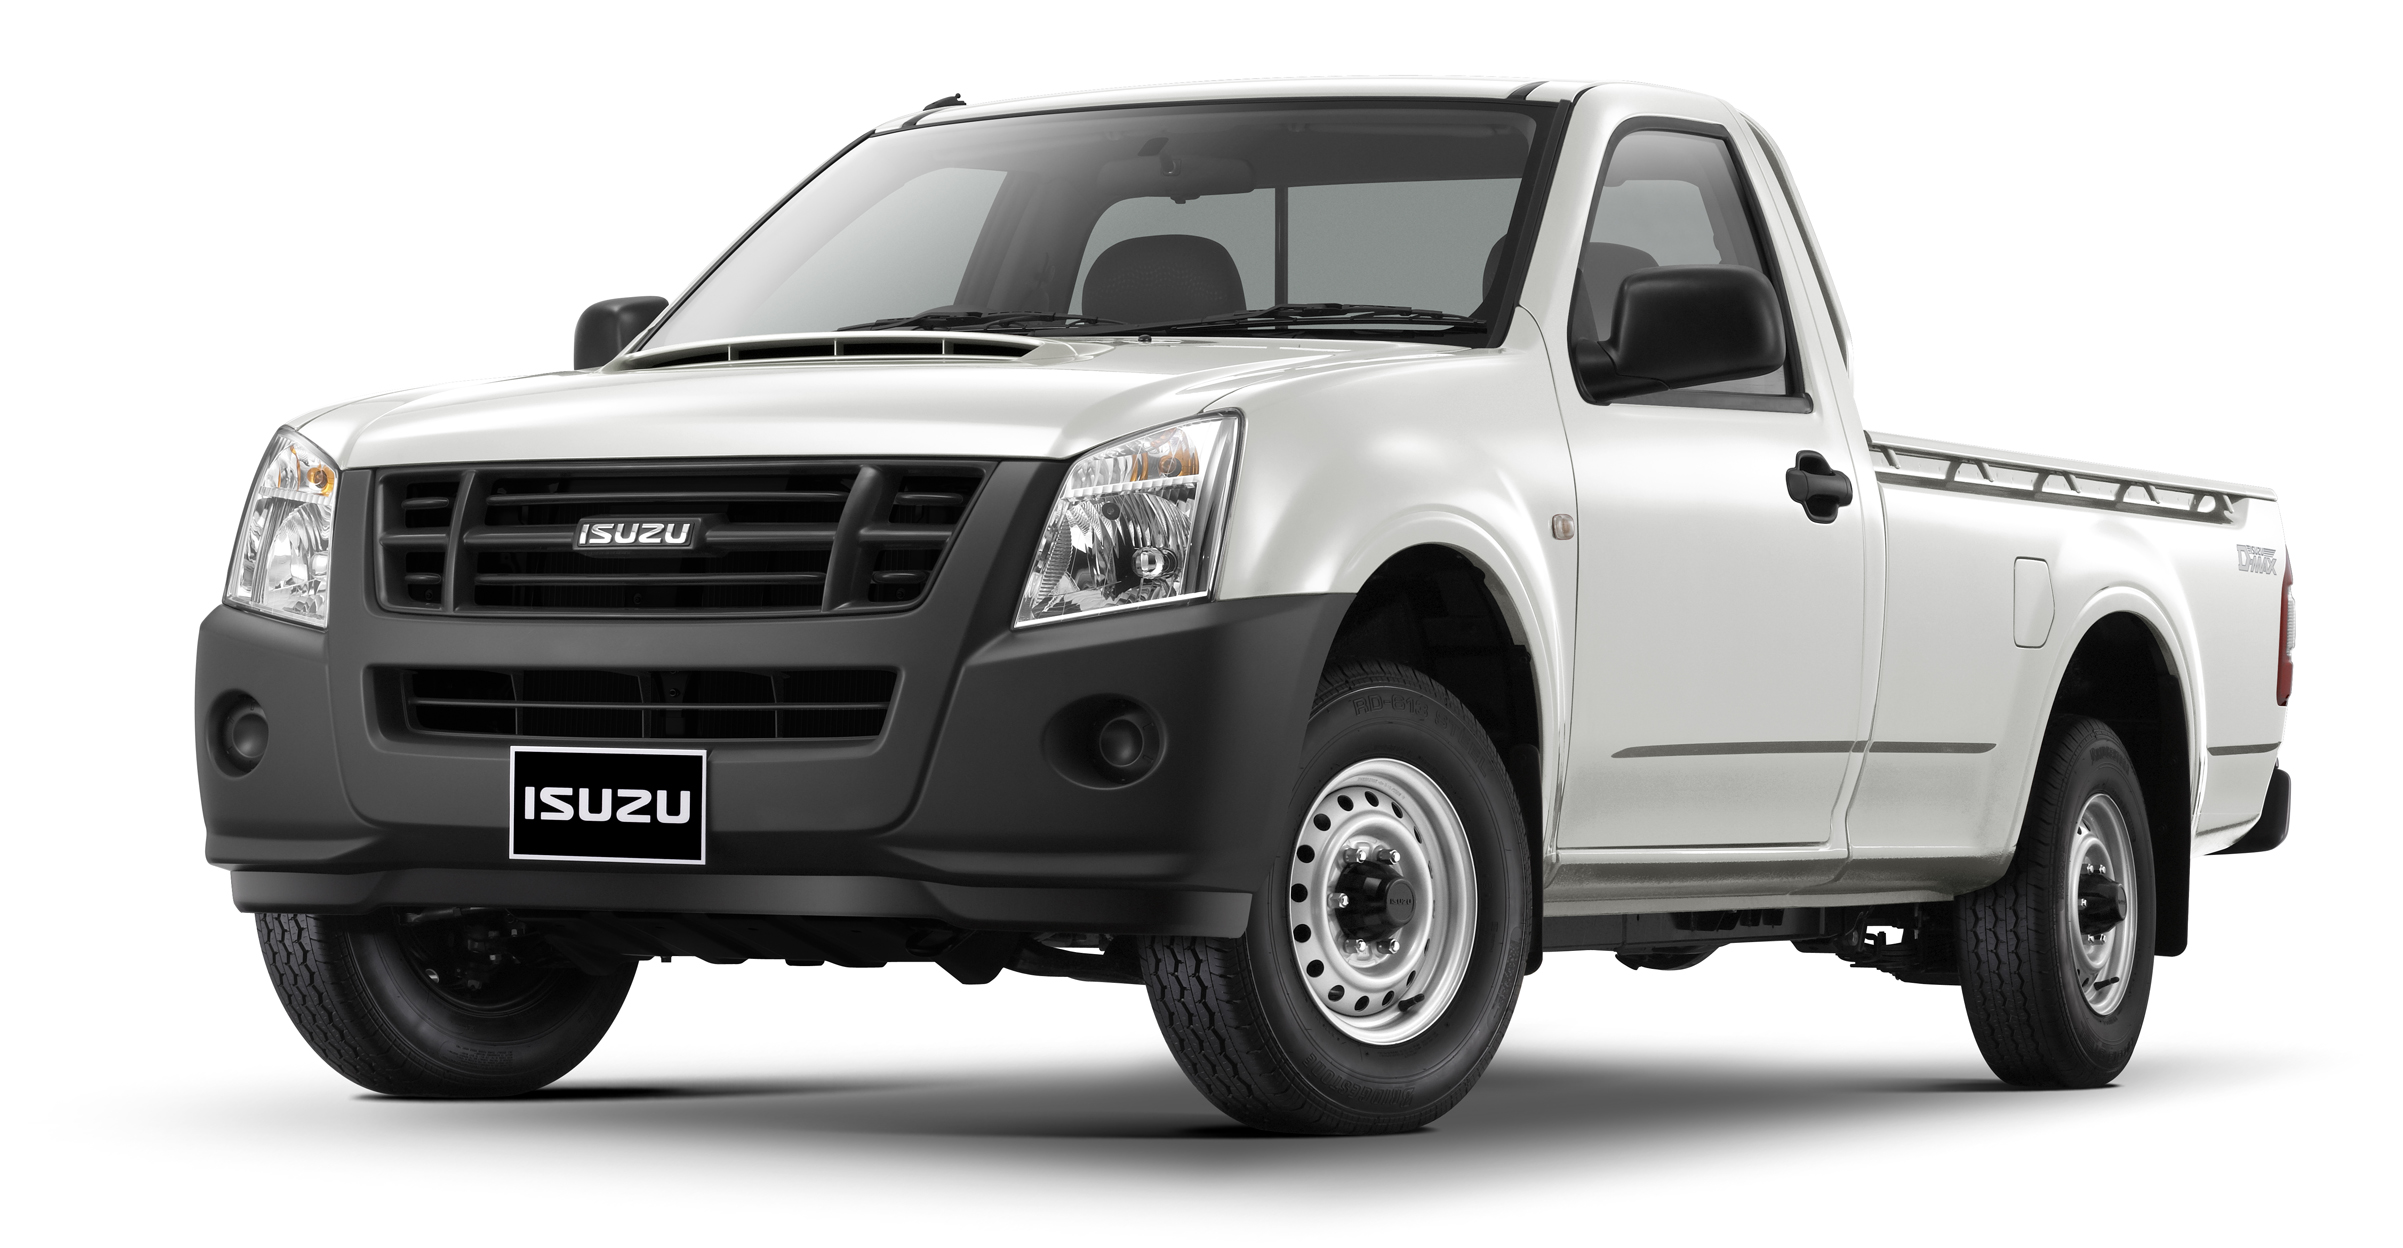 isuzu motors india finalizes agreement with hindustan motors limited hml hml to contract. Black Bedroom Furniture Sets. Home Design Ideas